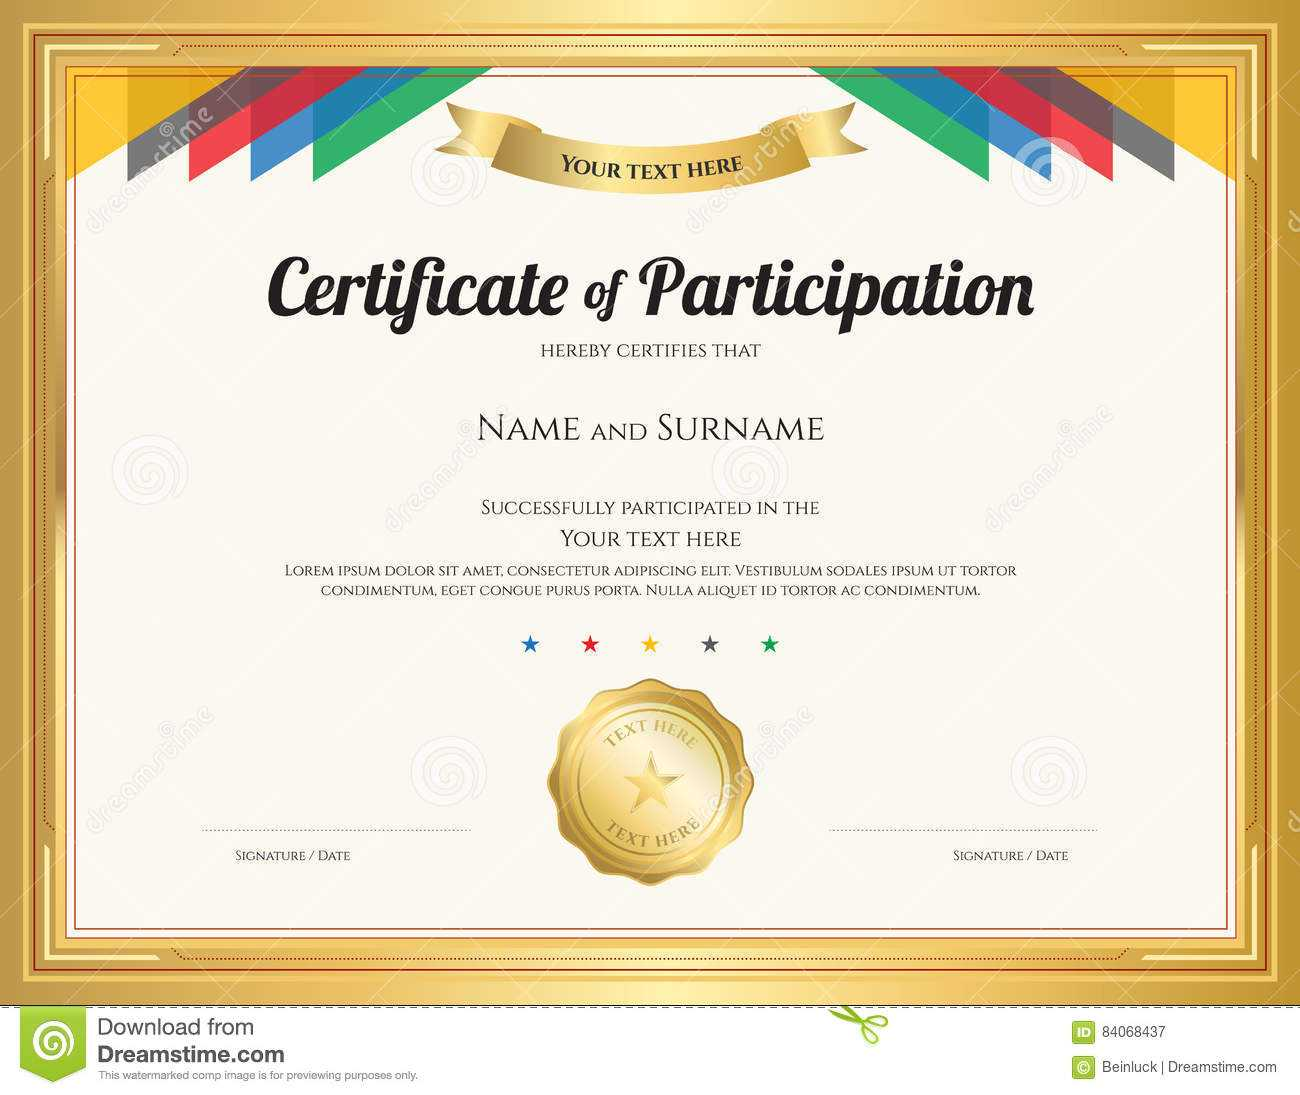 Certificate Of Participation Template With Gold Border Stock Pertaining To Sample Certificate Of Participation Template